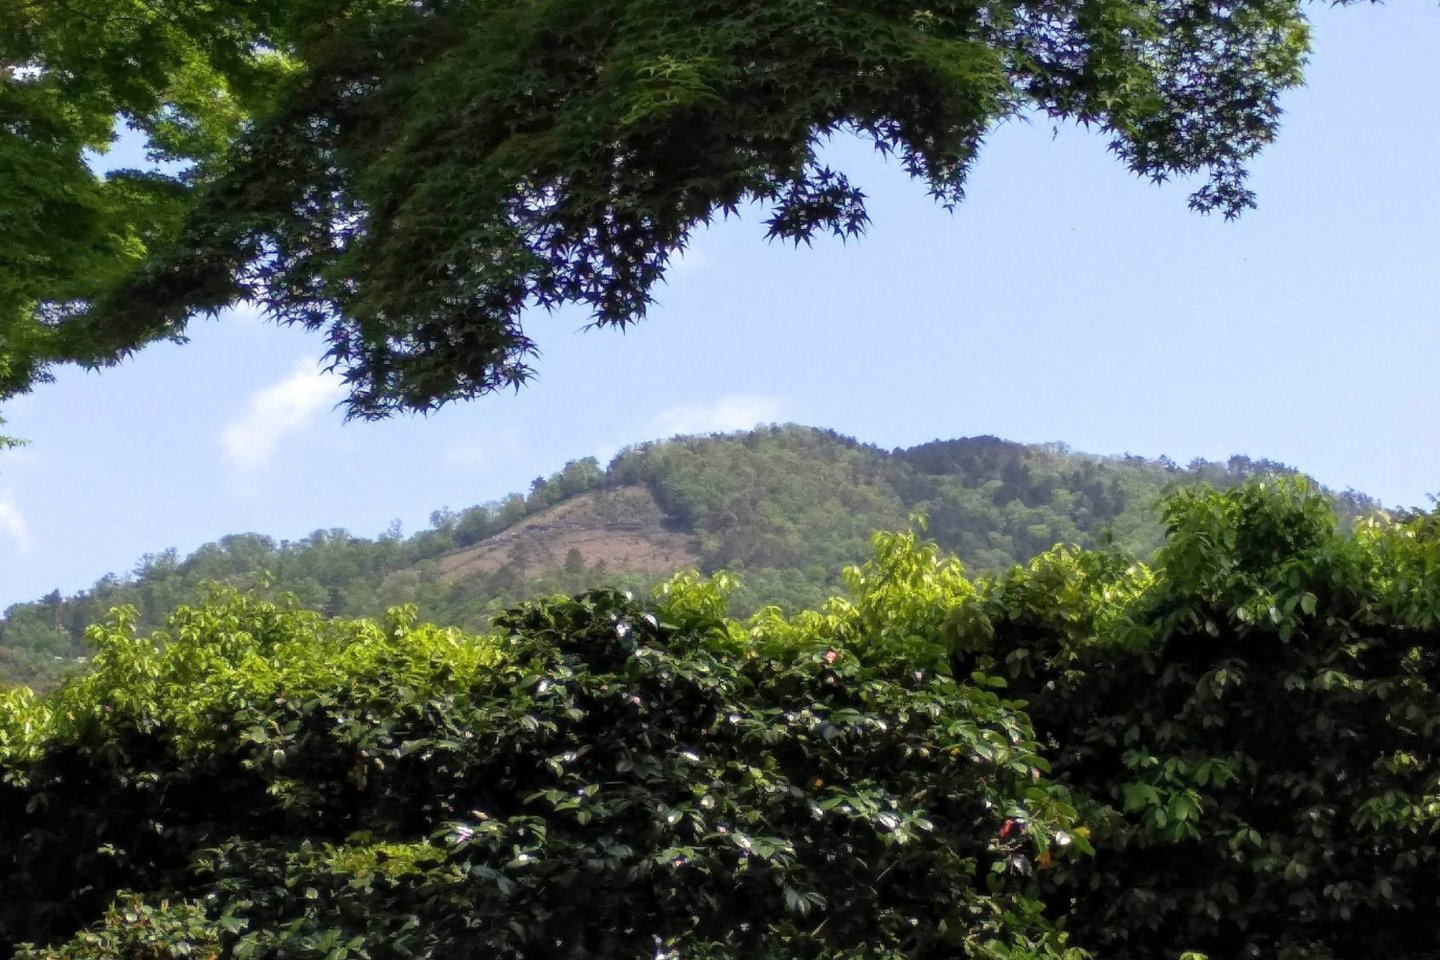 Daimonji from the ground